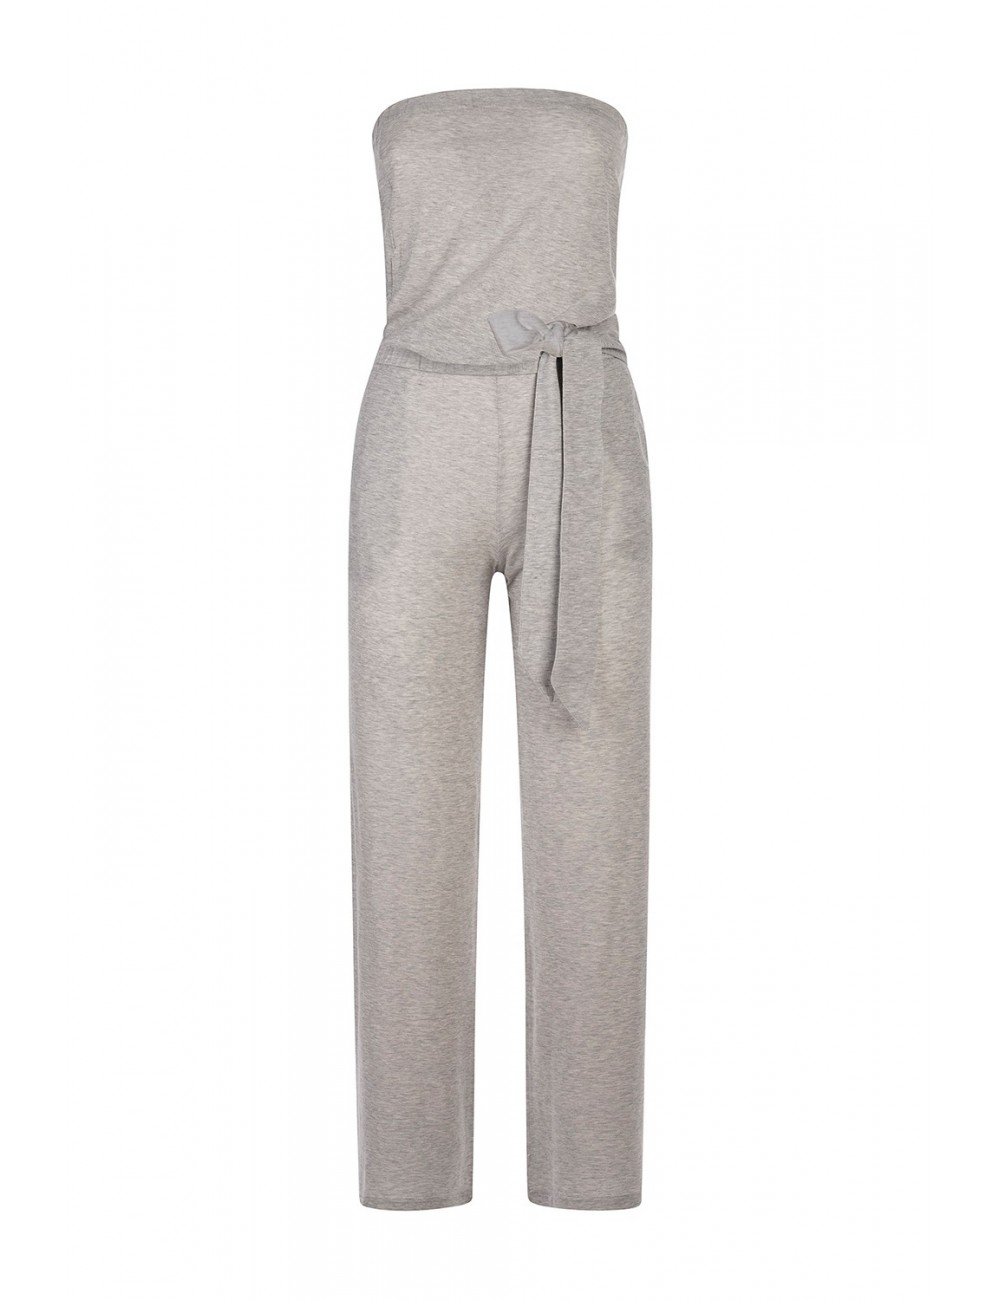 Jumsuit - Organic Cotton